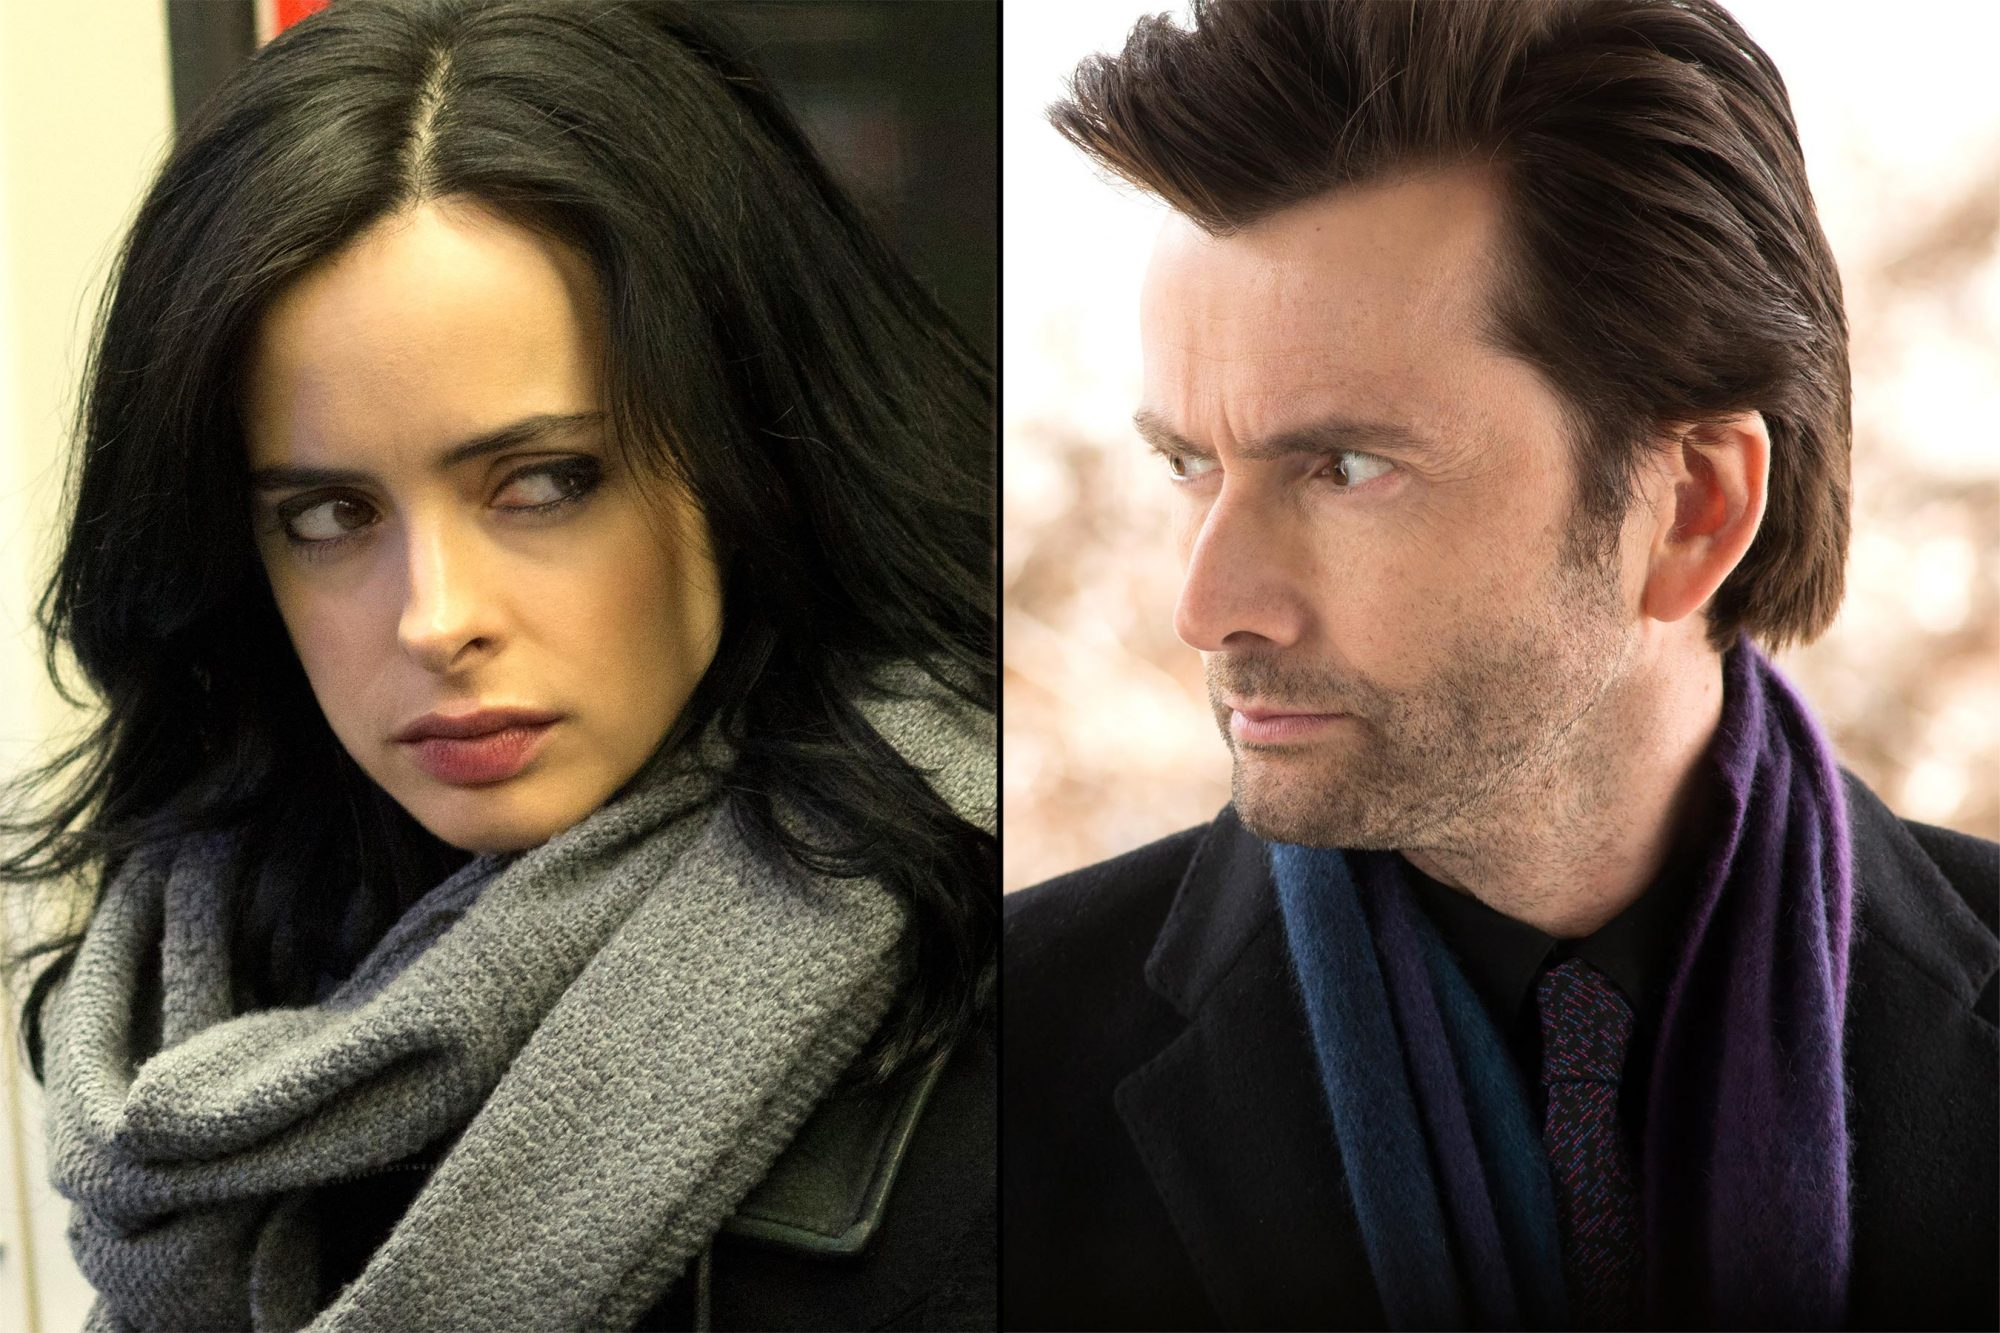 Jessica-Jones-Krysten-Ritter-David-Tennant